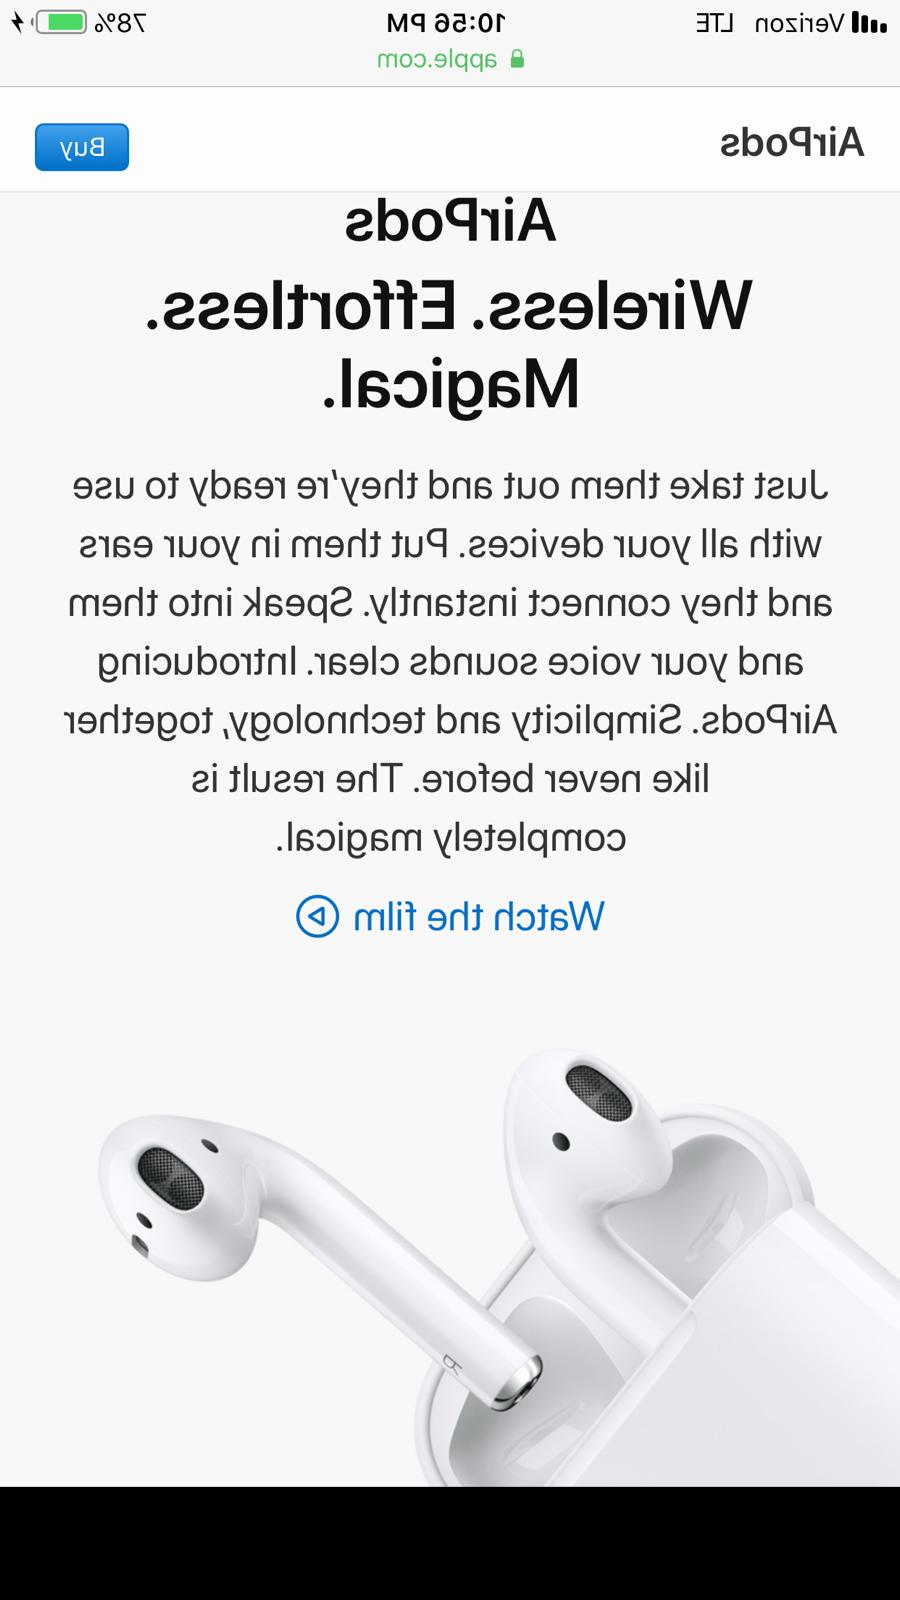 NEW Apple AirPods Earbuds 2 Left IN PACKAGING!